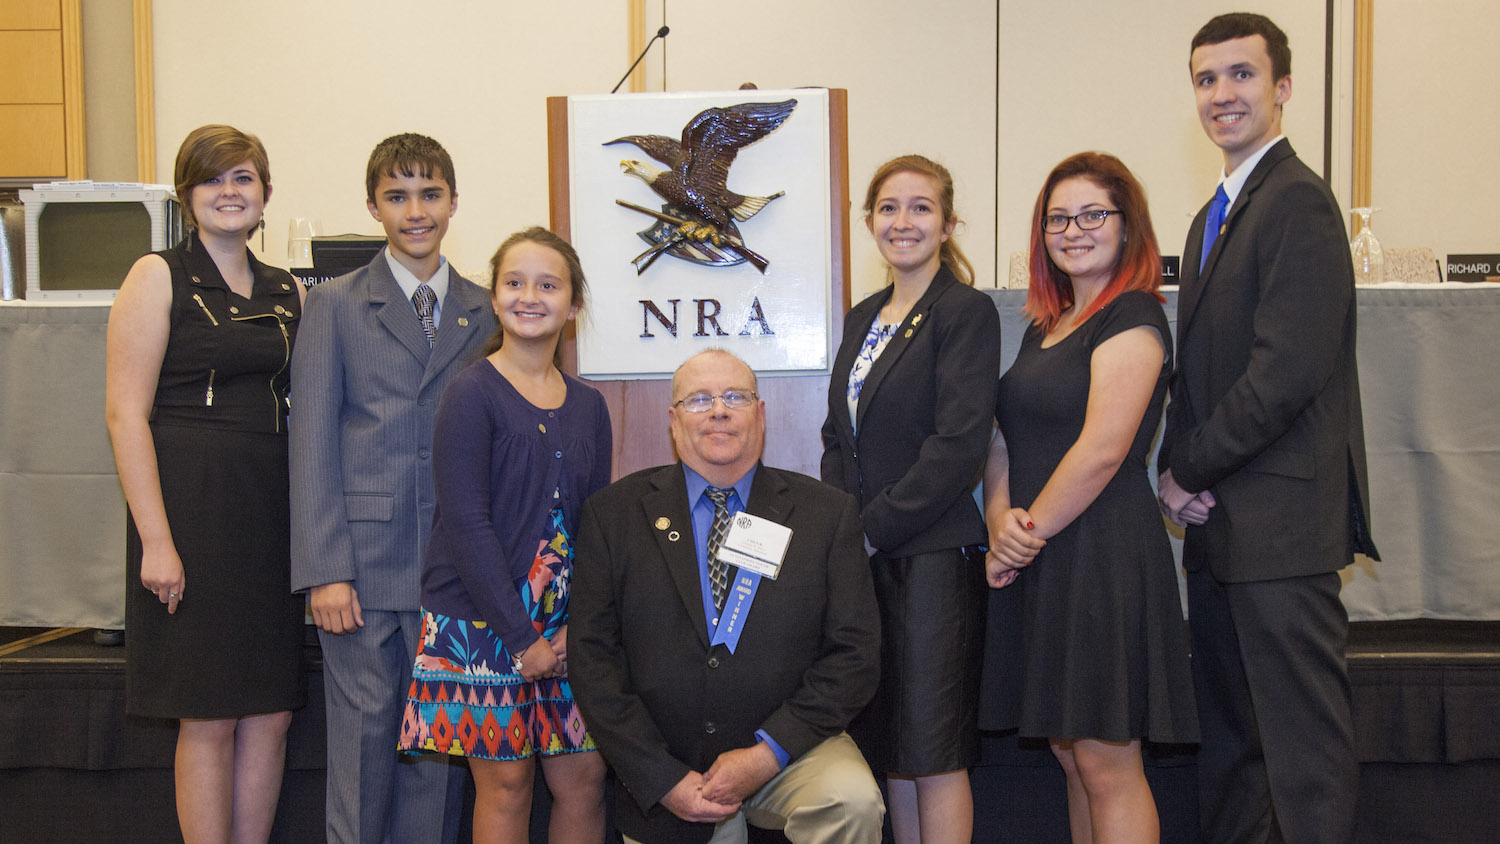 NRA bestows National Awards to outstanding individuals, groups at Board Meetings